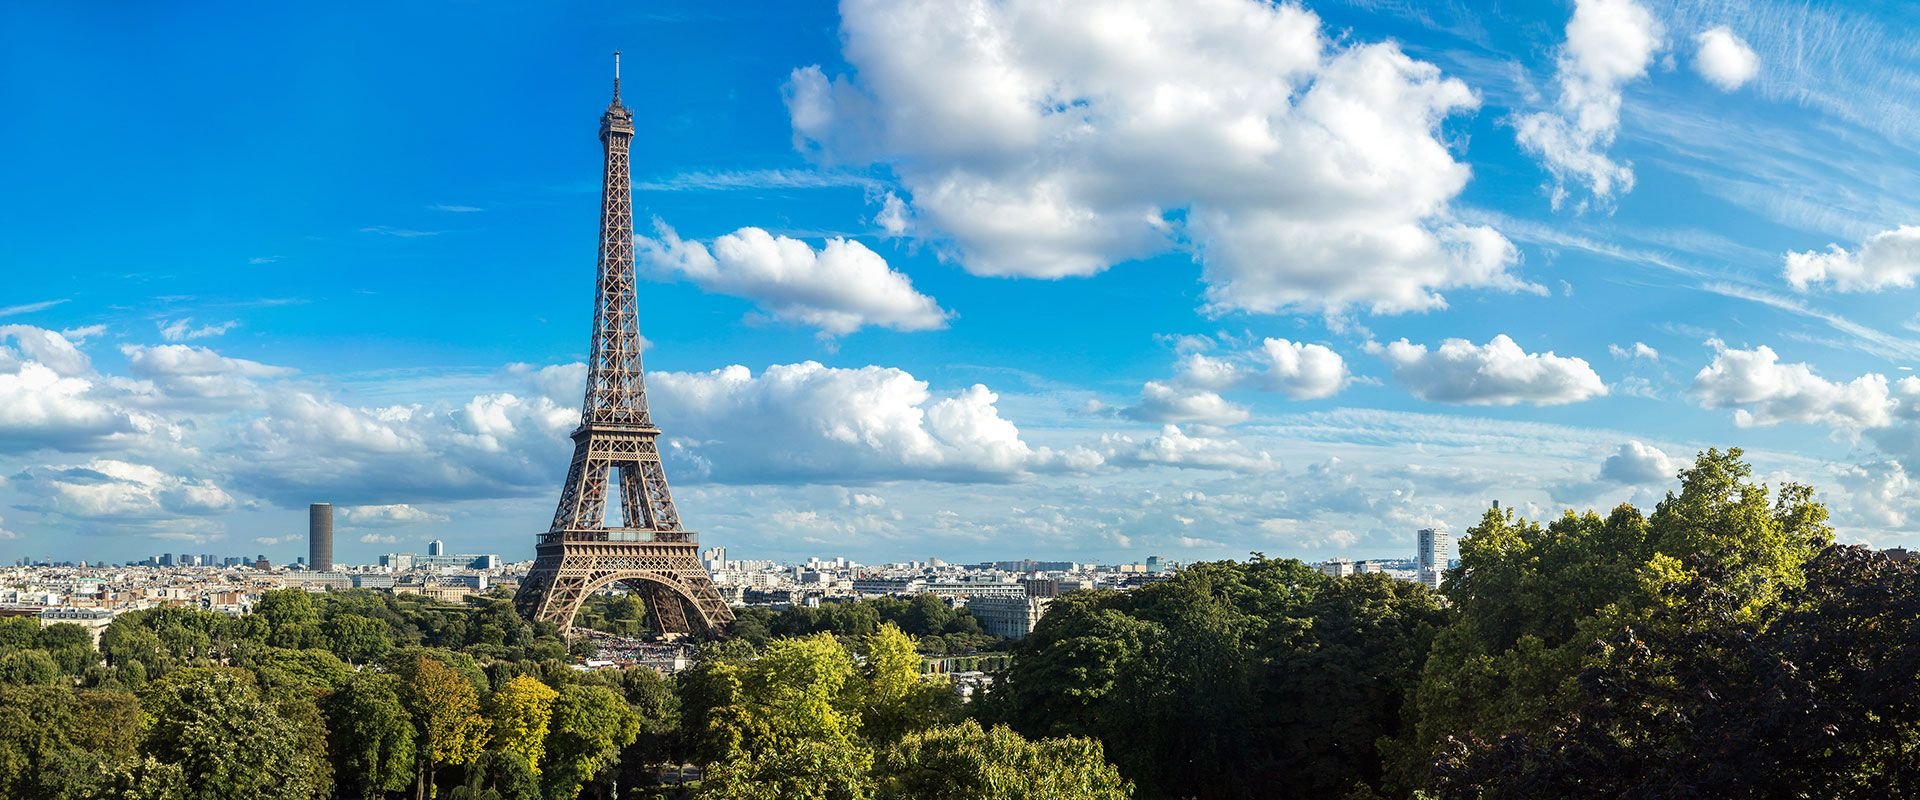 Our Paris bus tours offer the perfect introduction to the